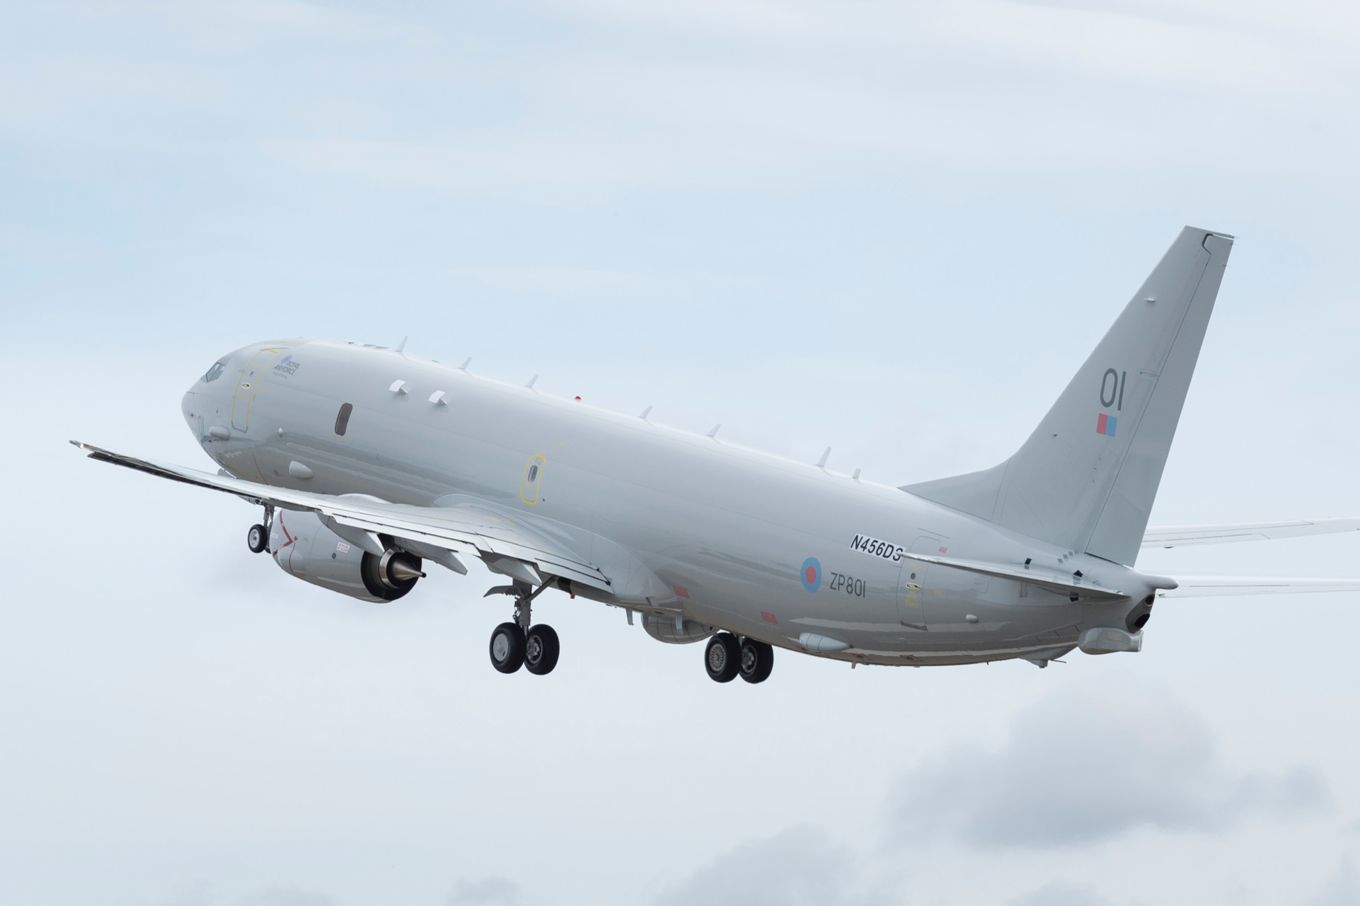 UK P-8A First Flight